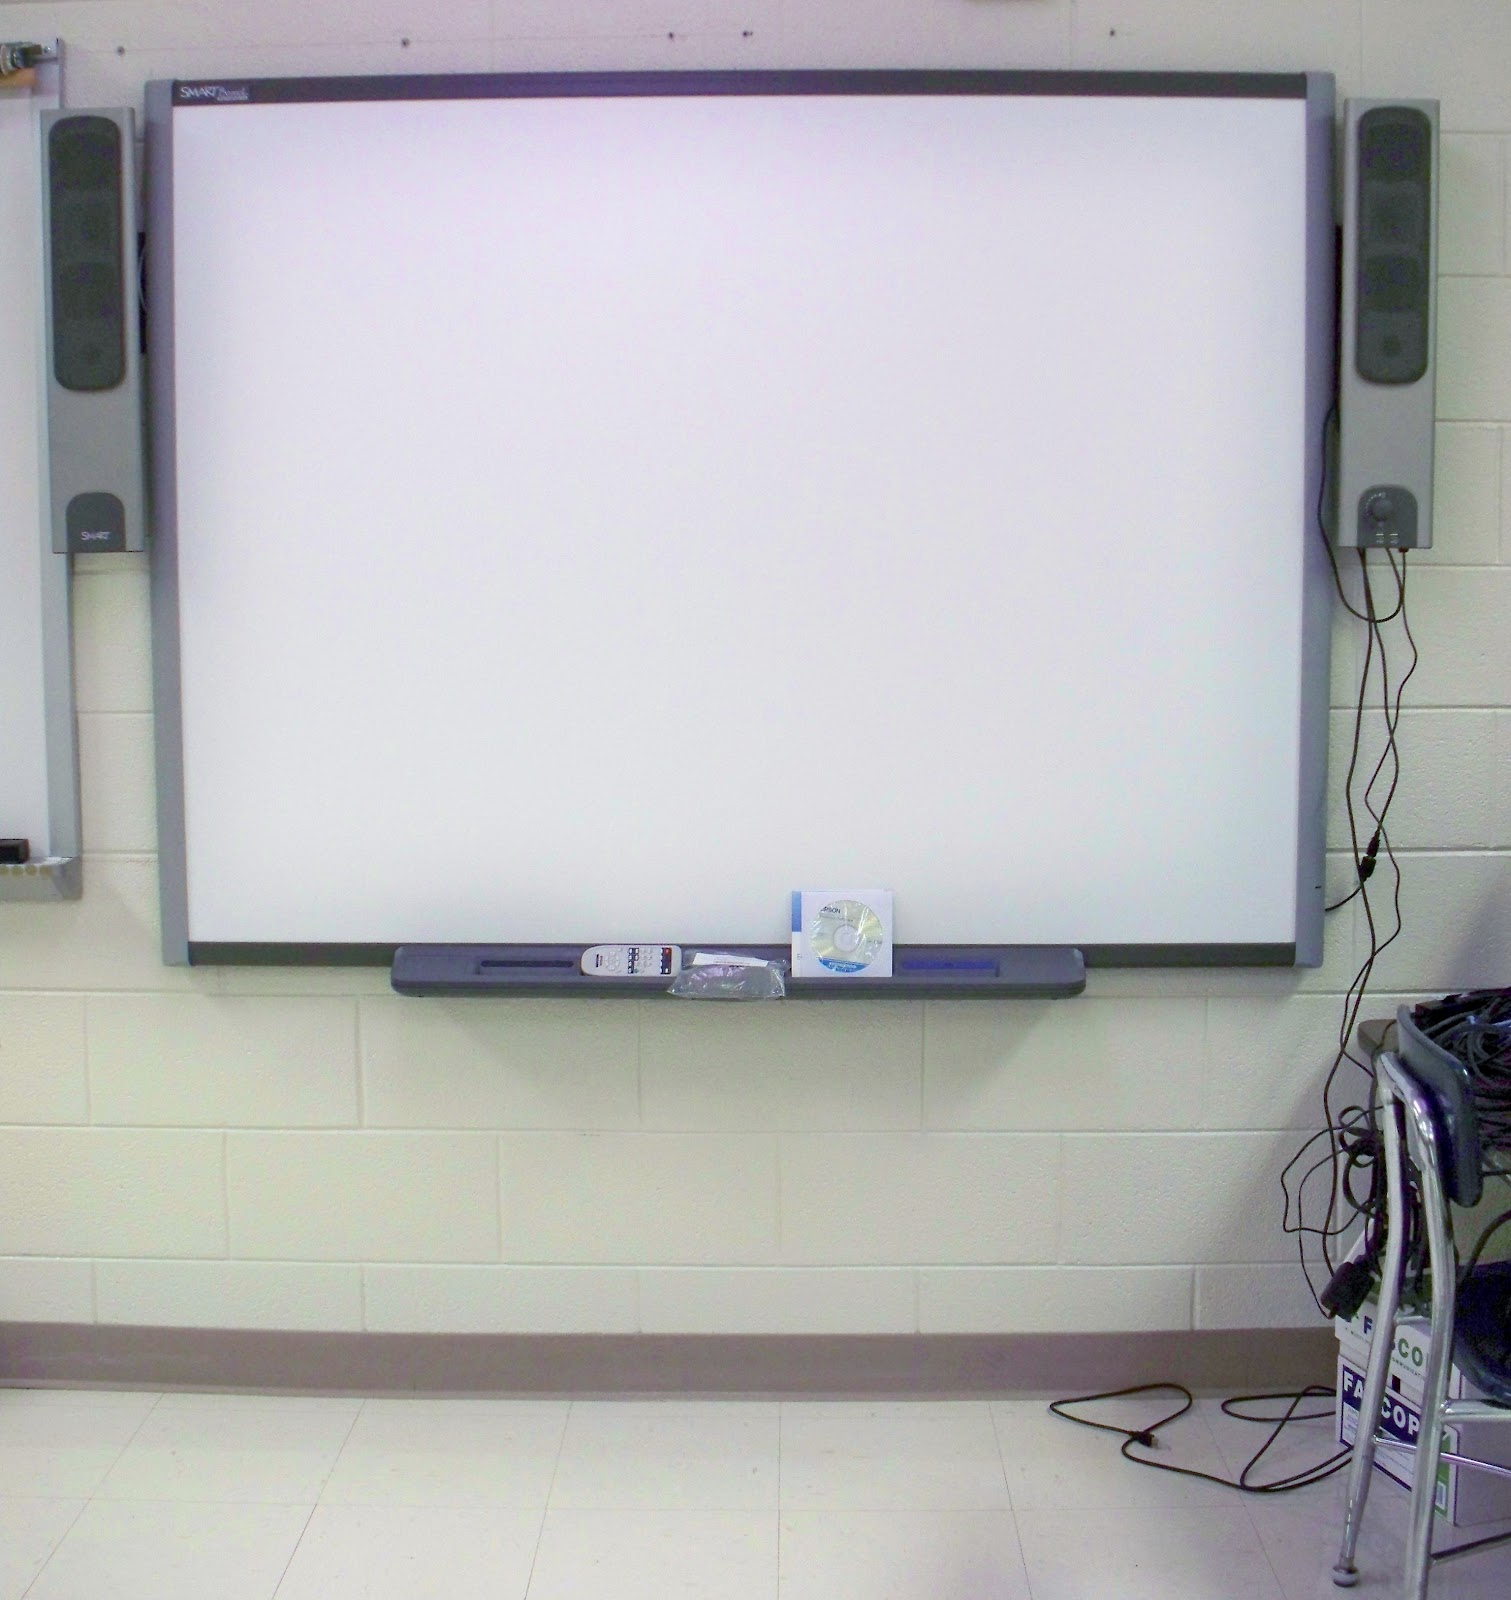 classroom with smartboard clipart - HD1511×1600